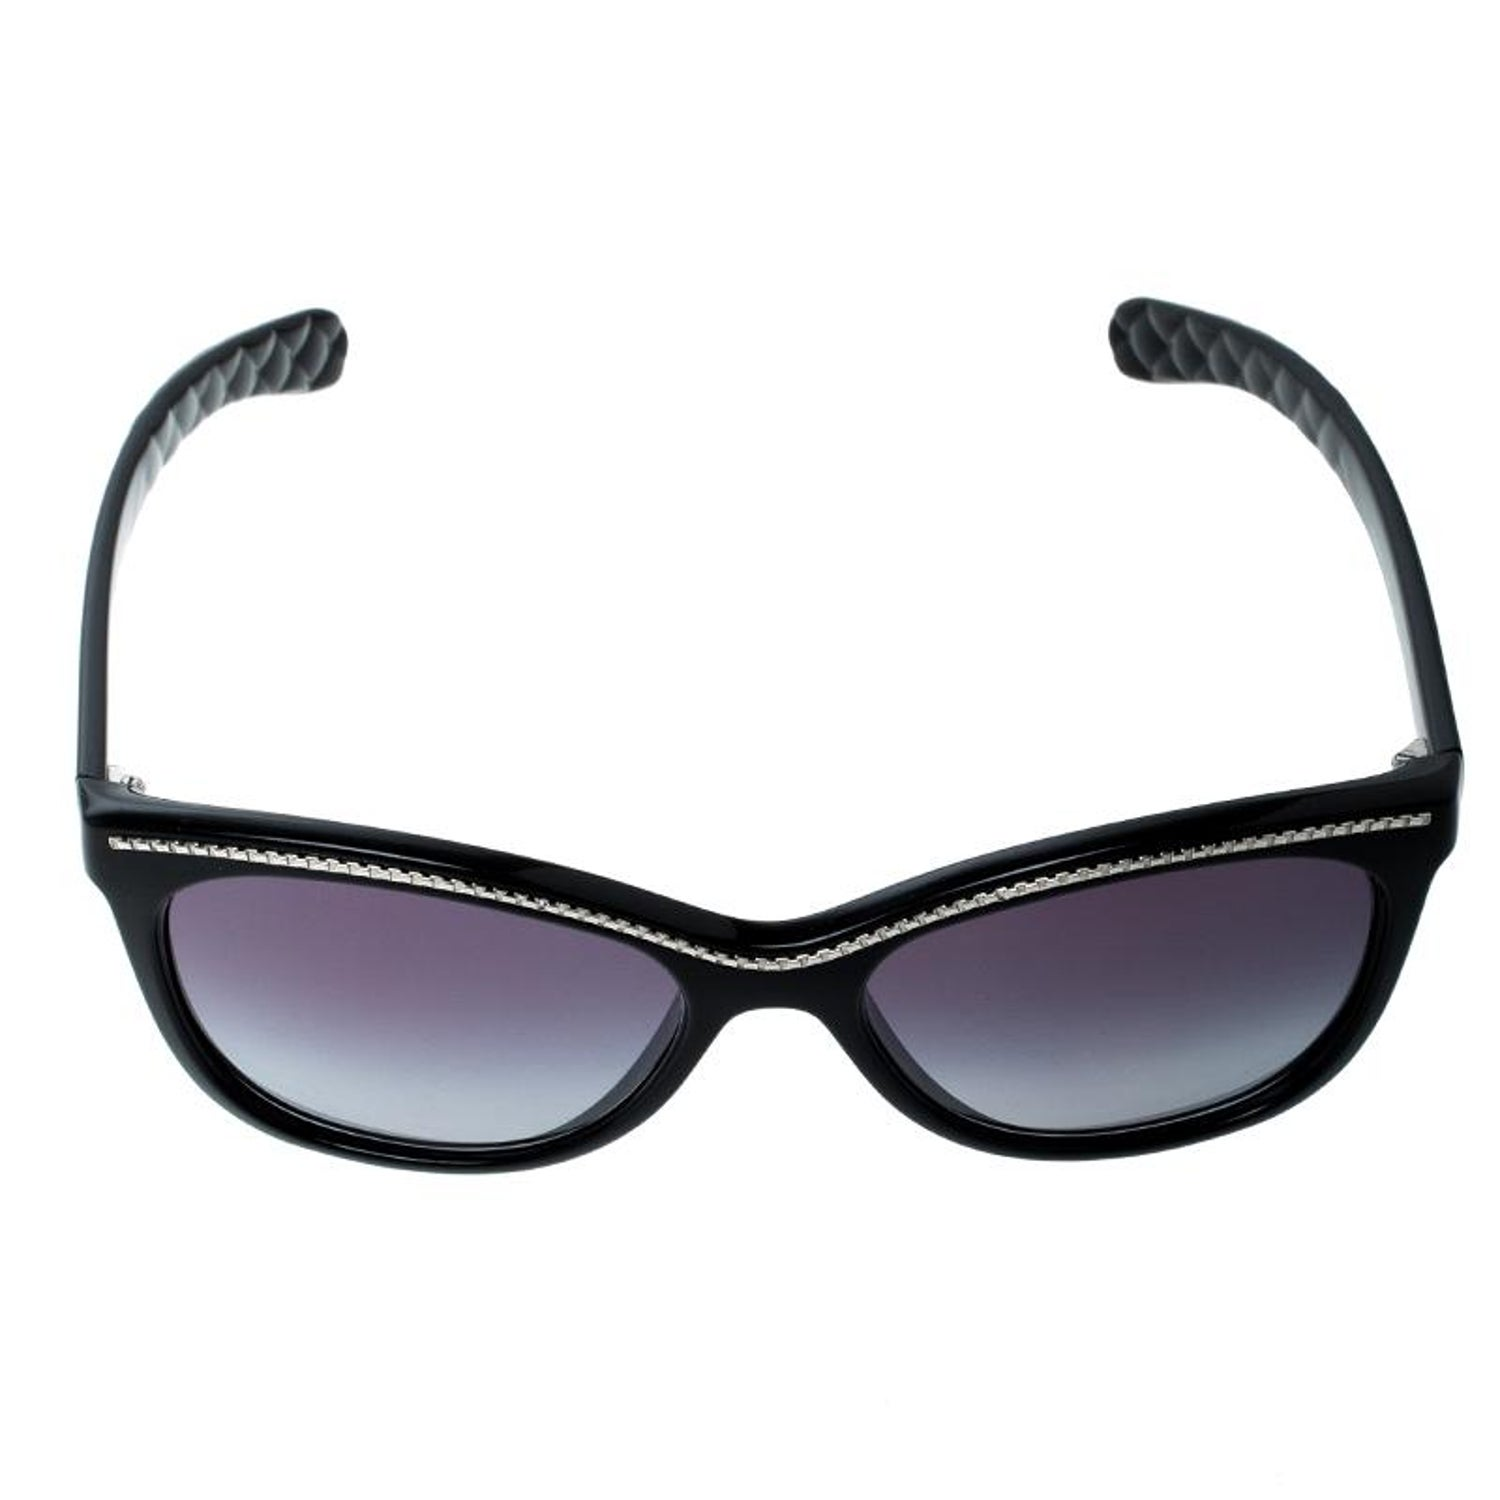 9cec65f9cea7c Chanel Black Grey Gradient 6041 Cat Eye Sunglasses For Sale at 1stdibs